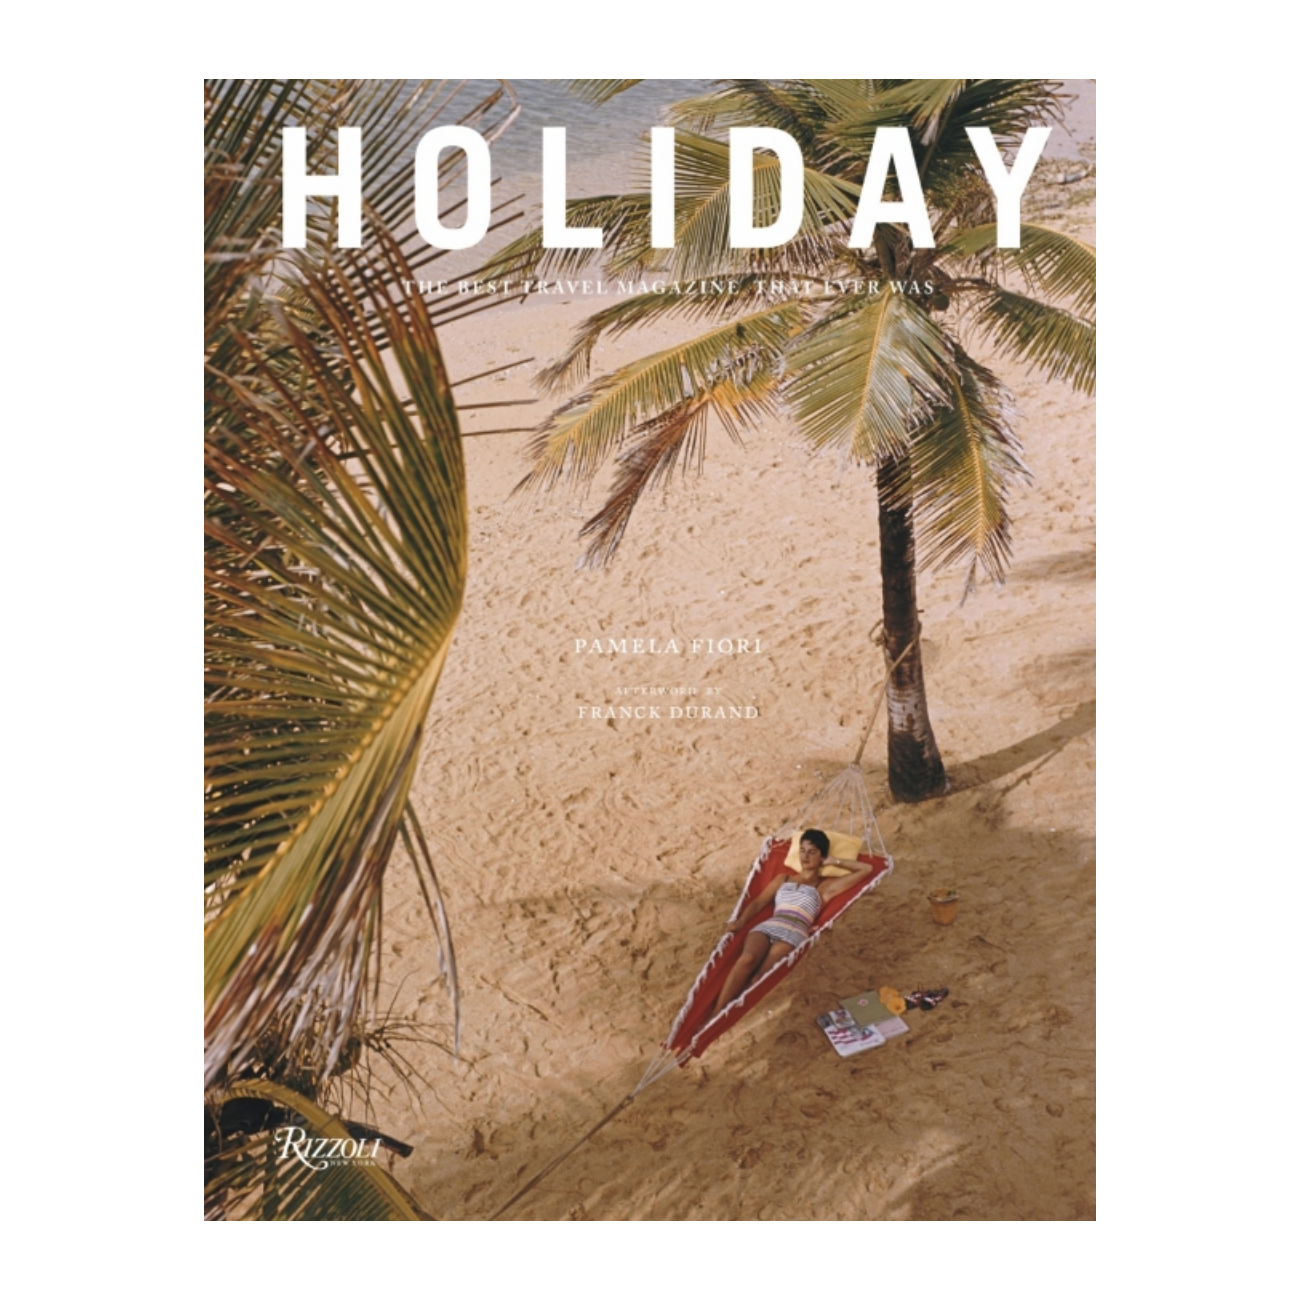 Holiday. The Best Travel Magazine that Ever Was